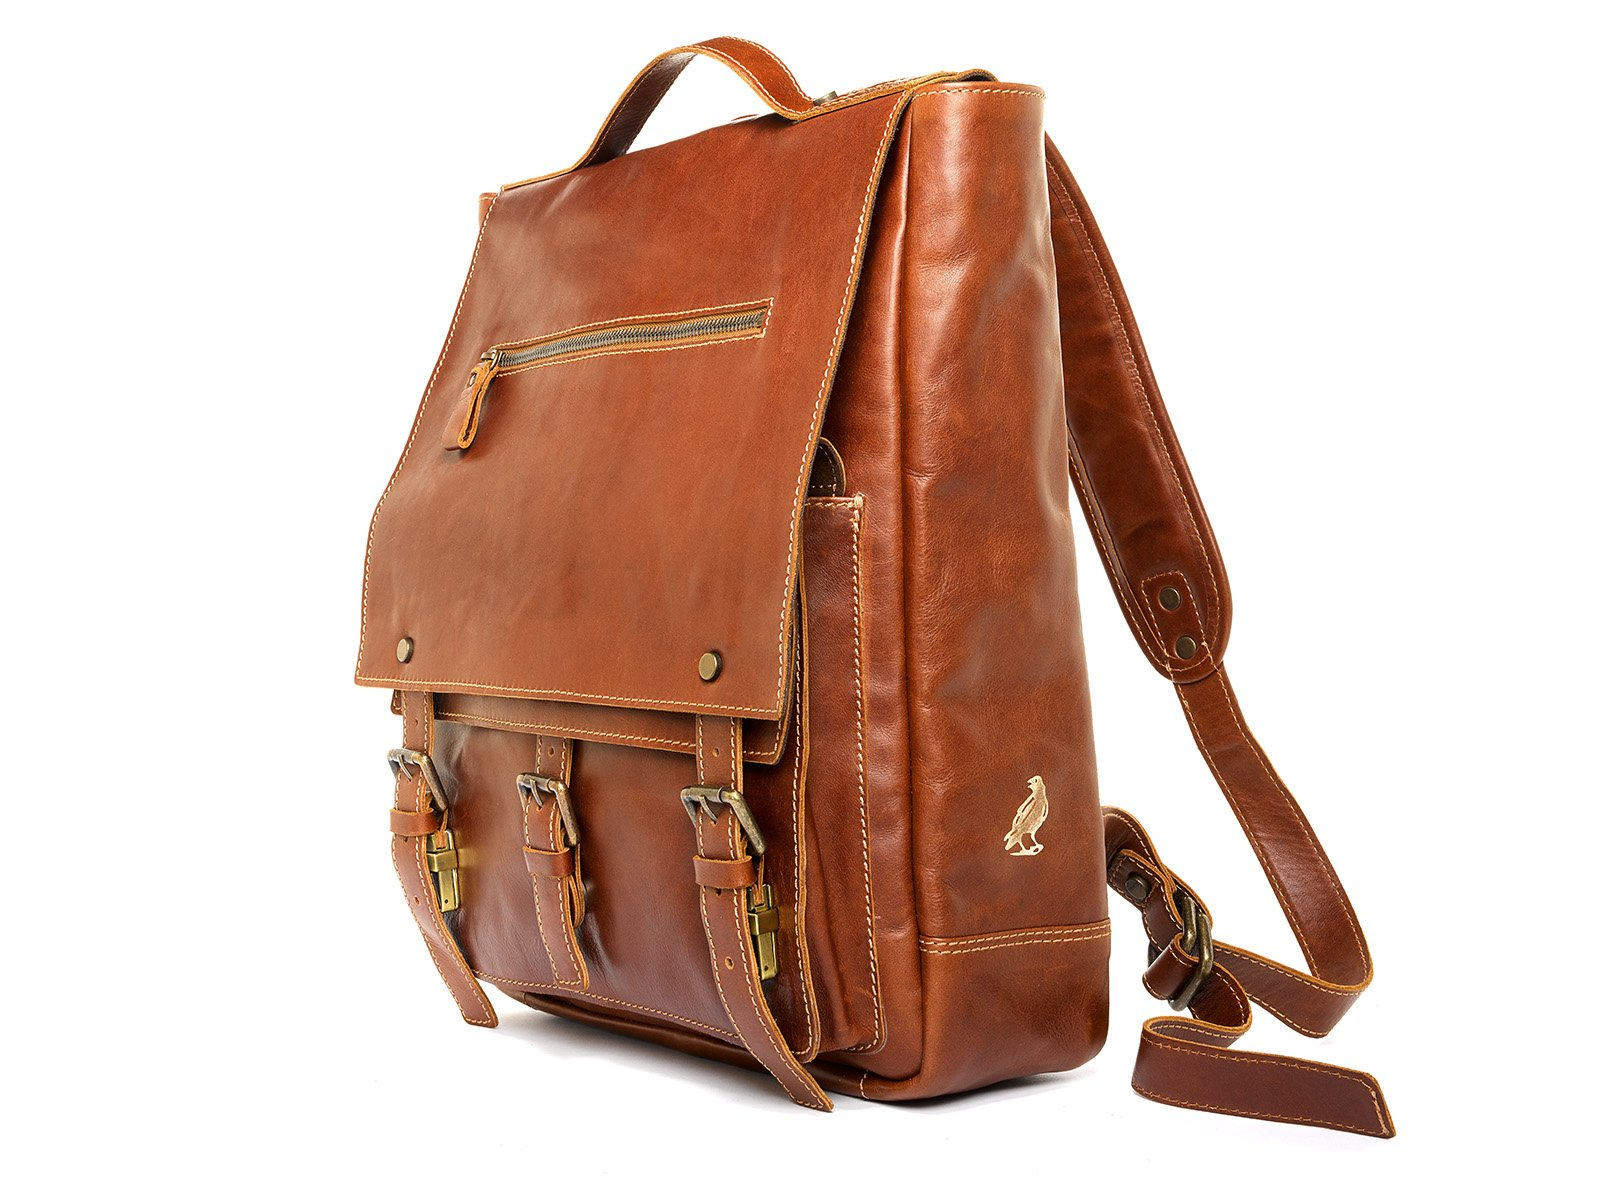 Handmade in Italy prime leather backpack men women travel by Satch&Fable